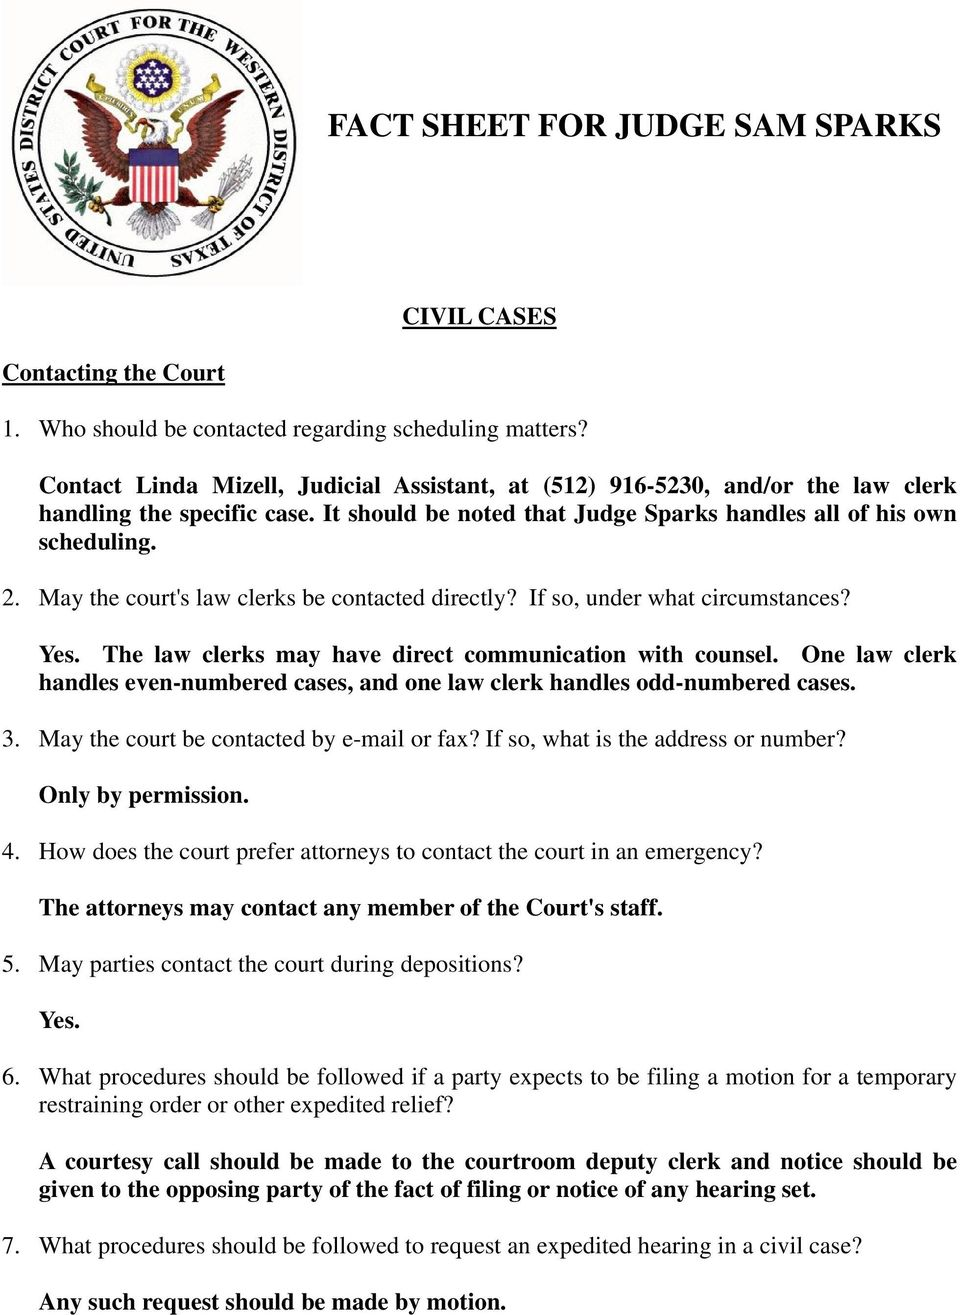 May the court's law clerks be contacted directly? If so, under what circumstances? Yes. The law clerks may have direct communication with counsel.